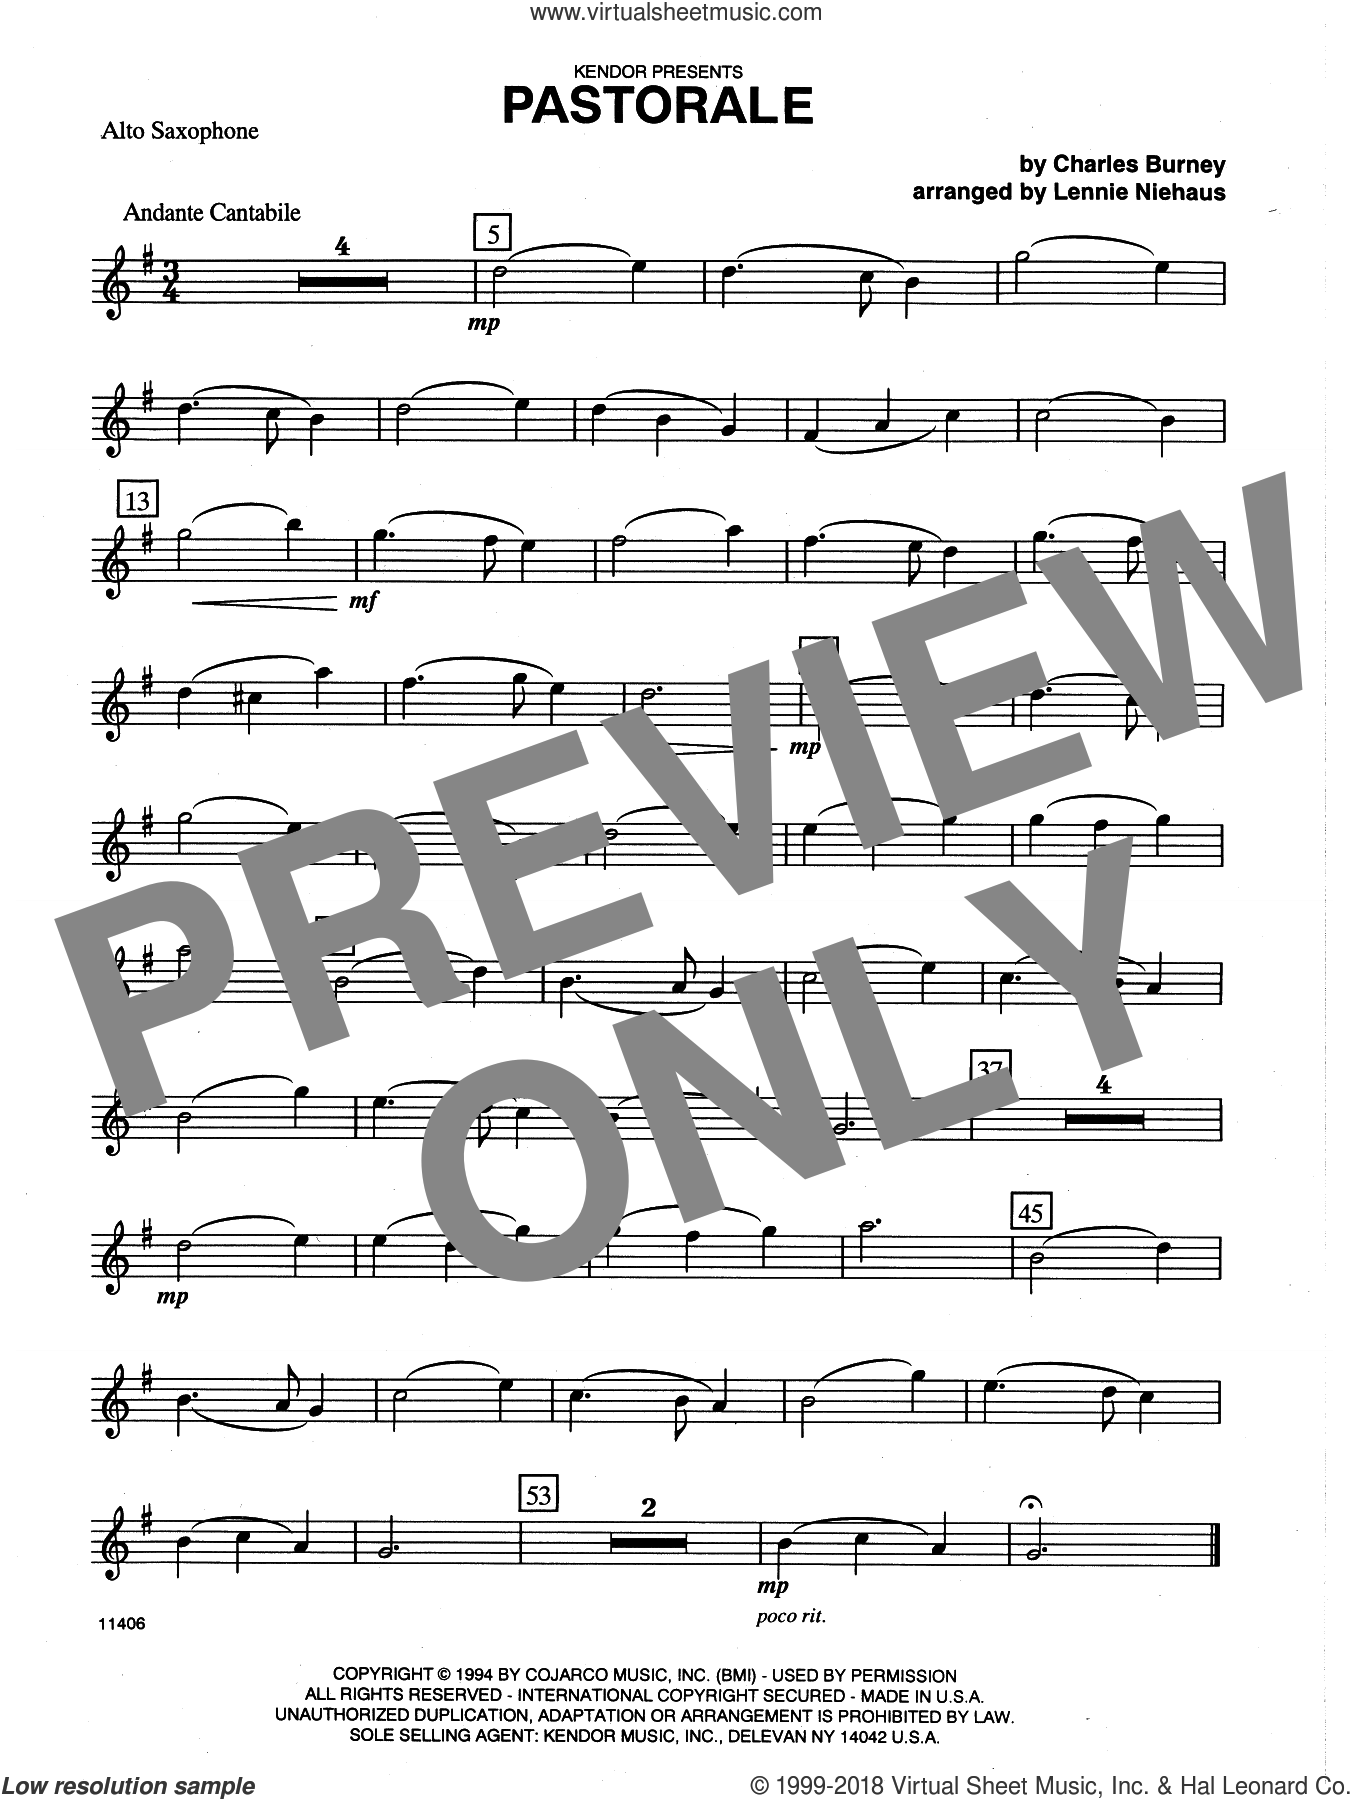 Pastorale (complete set of parts) sheet music for alto saxophone and piano by Lennie Niehaus and Burney, intermediate skill level